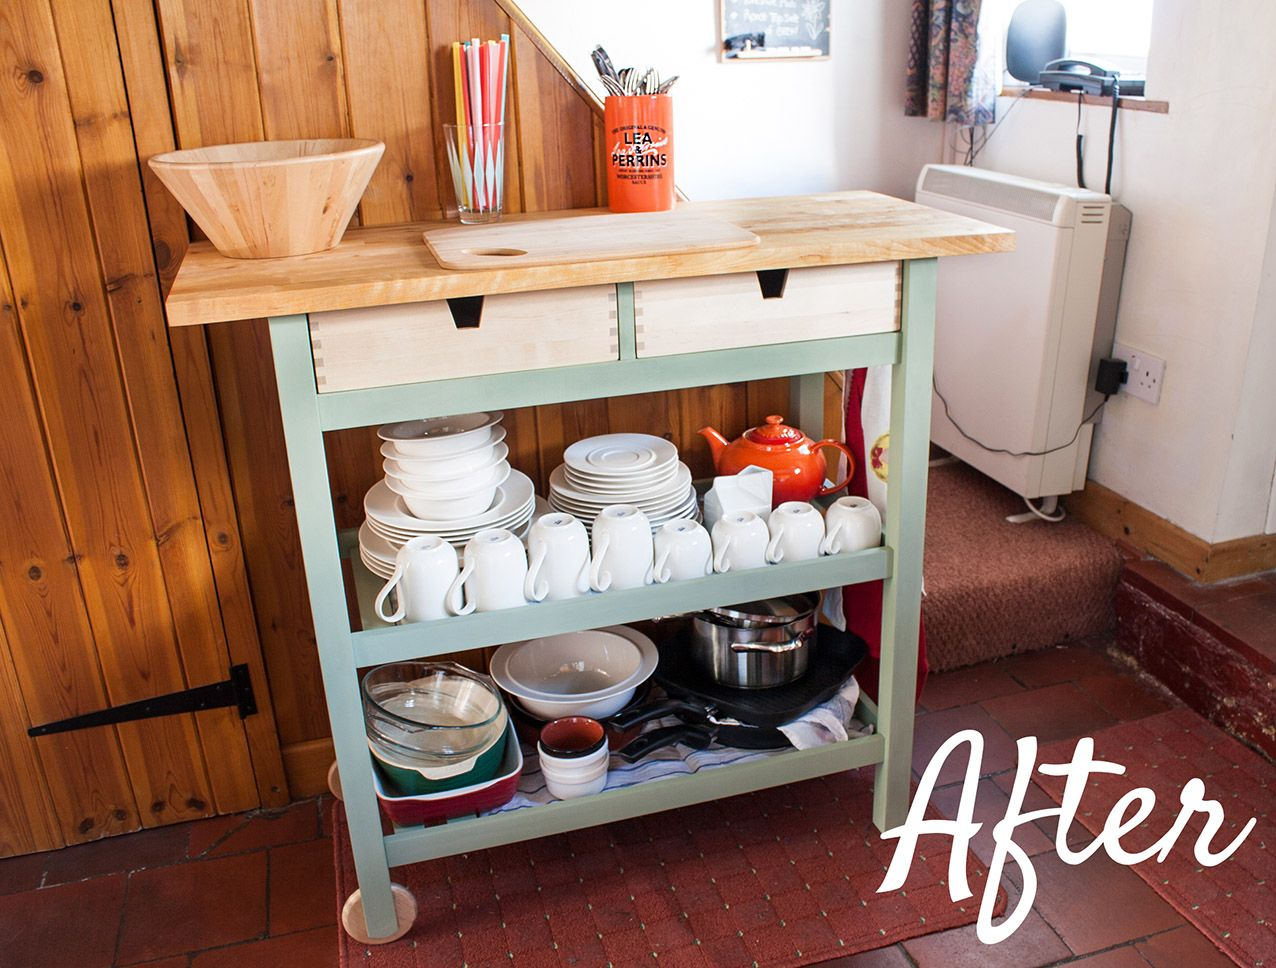 Escaping The Grind (and Other Small Feats): Ikea Kitchen Island Facelift